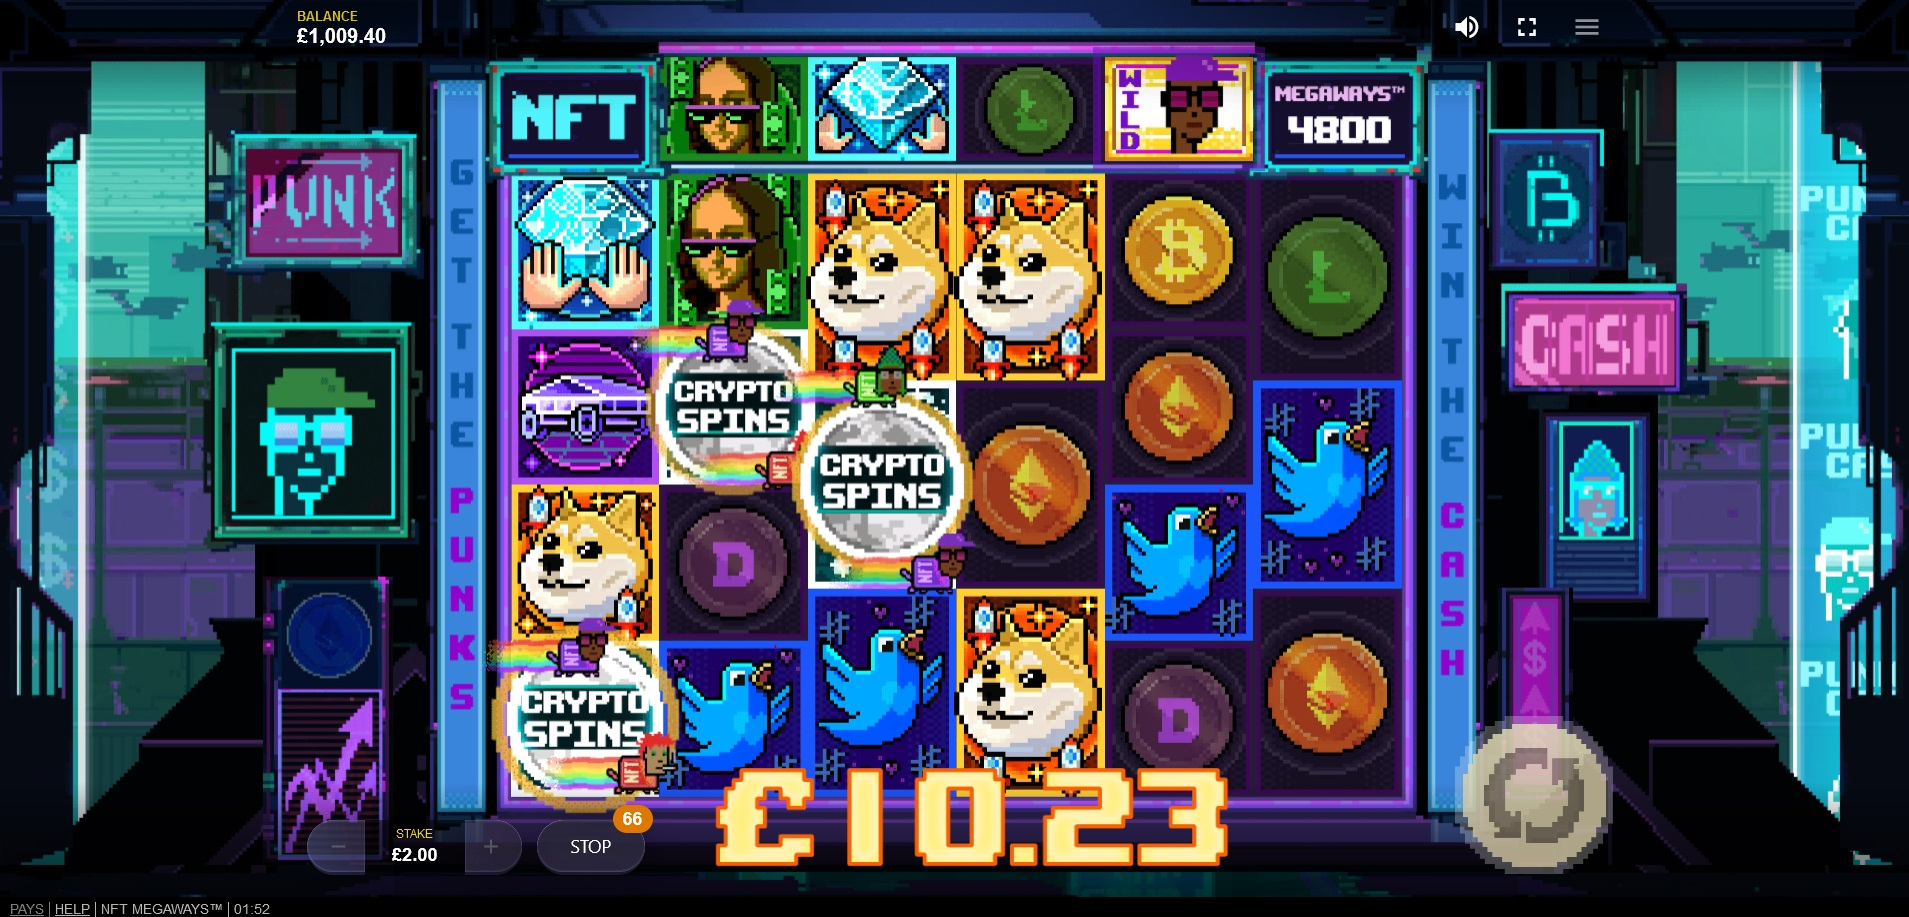 How to win big in NFT Megaways – Crypto Spins